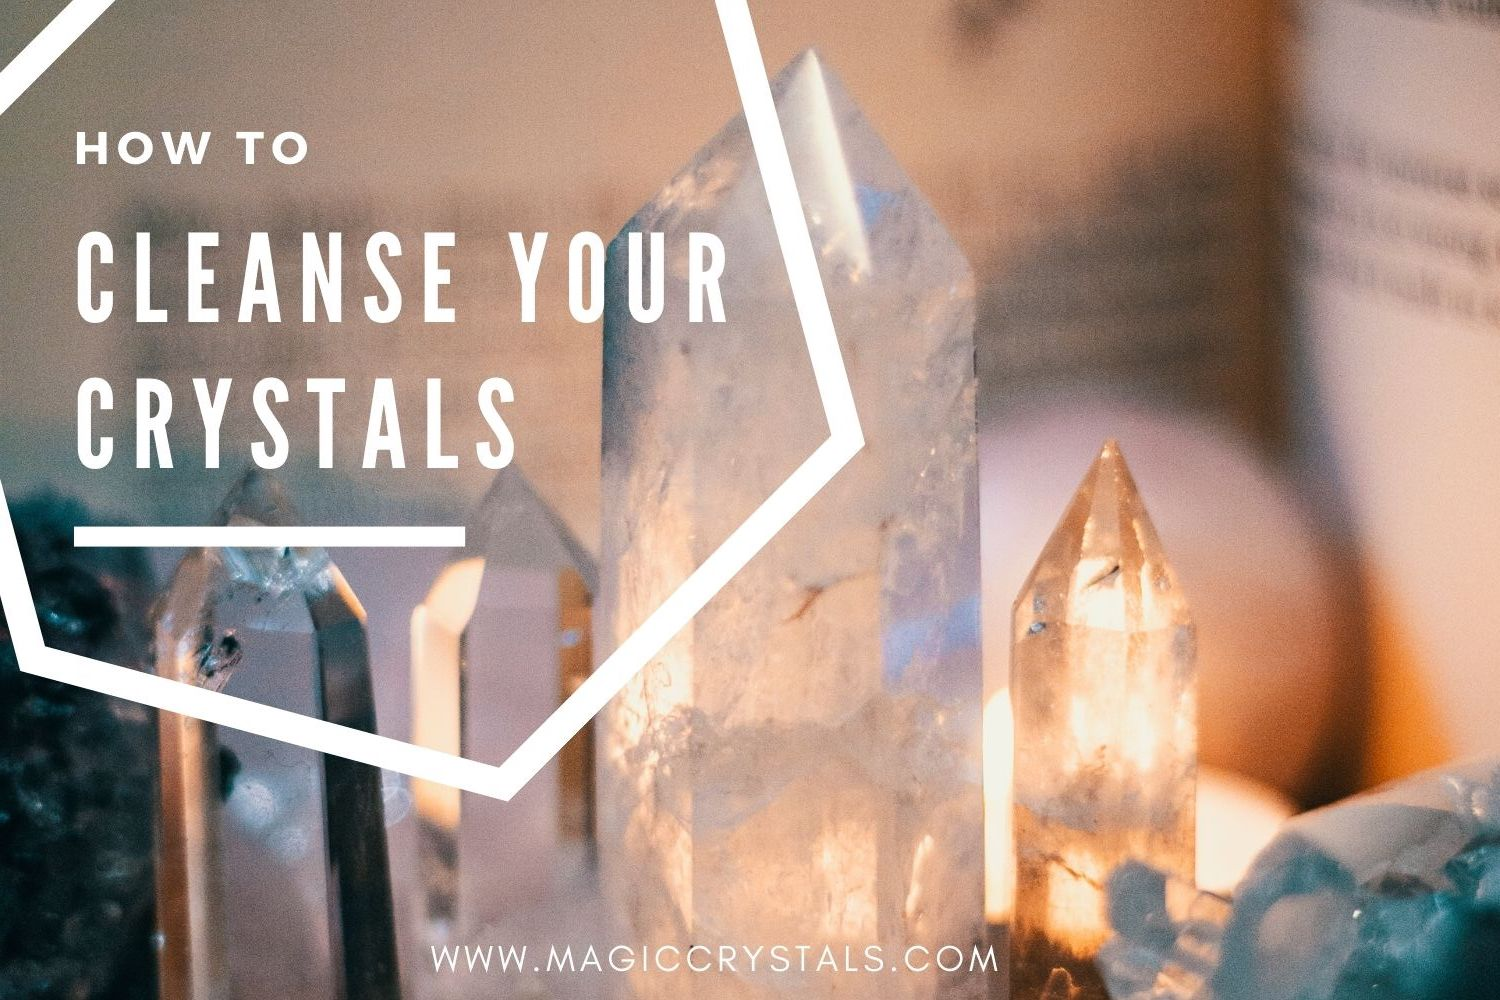 How-To-Cleanse-Crystals-Magiccrystals.com